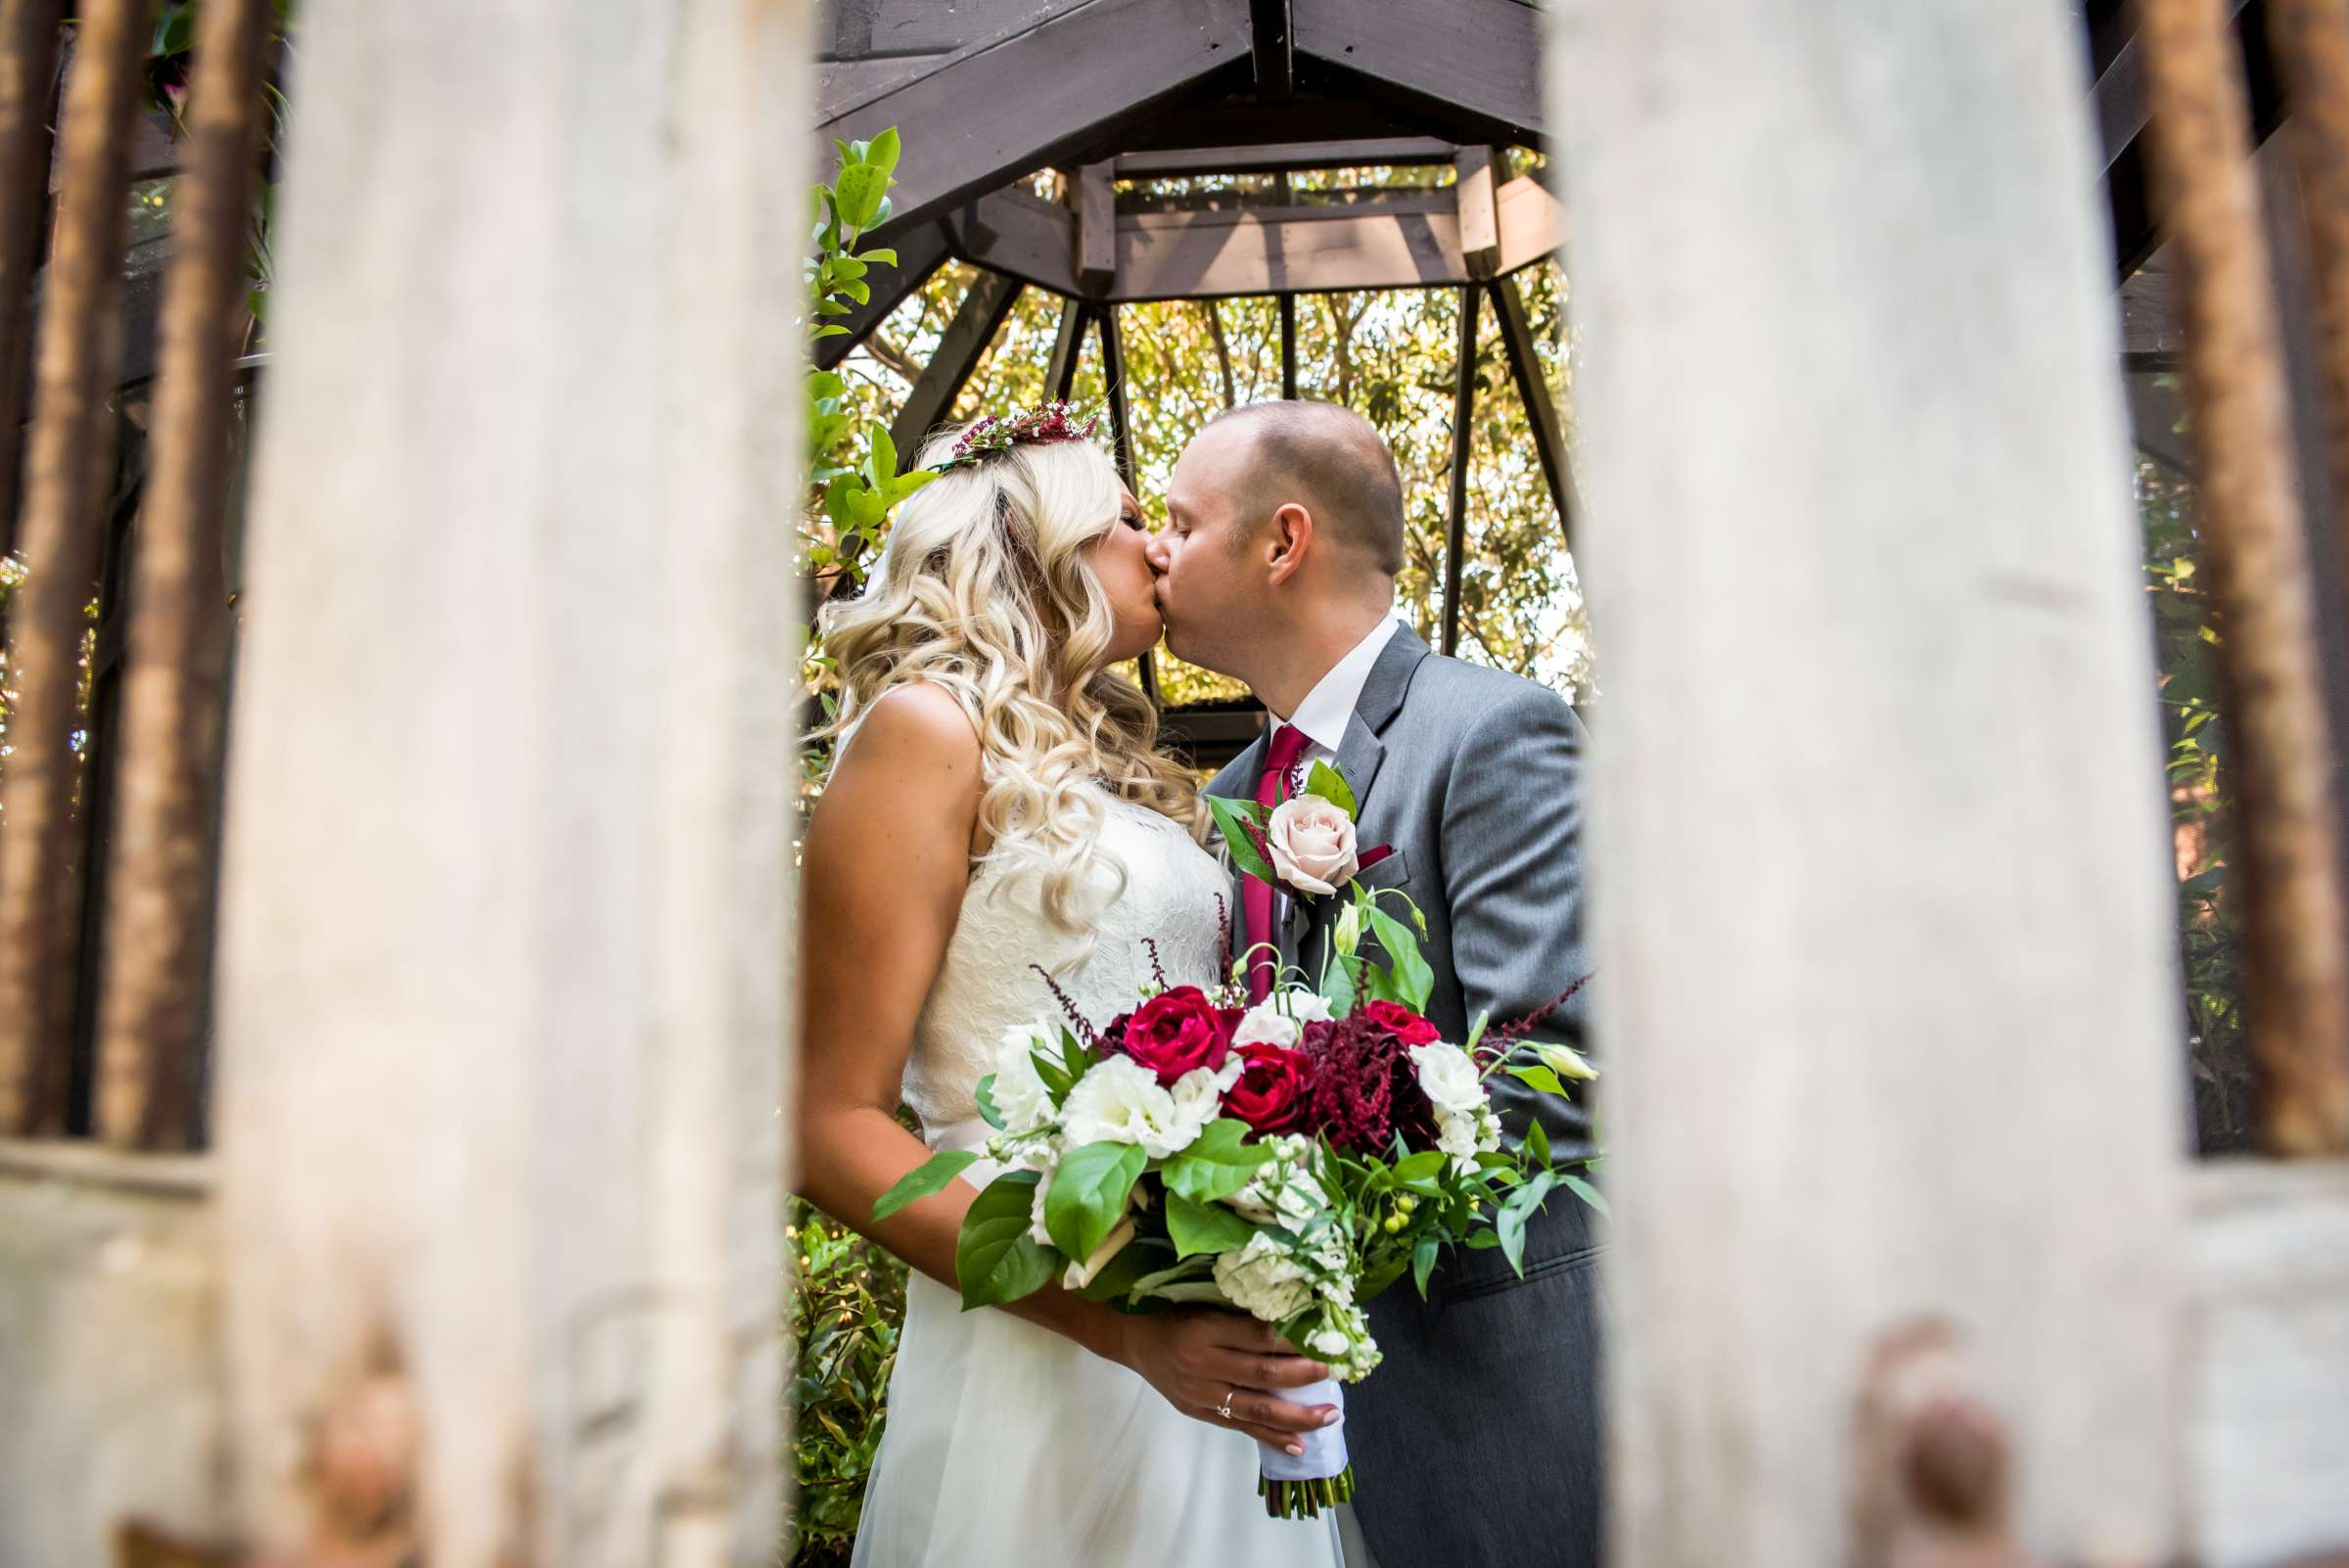 Twin Oaks House & Gardens Wedding Estate Wedding, Brittany and Sean Wedding Photo #18 by True Photography